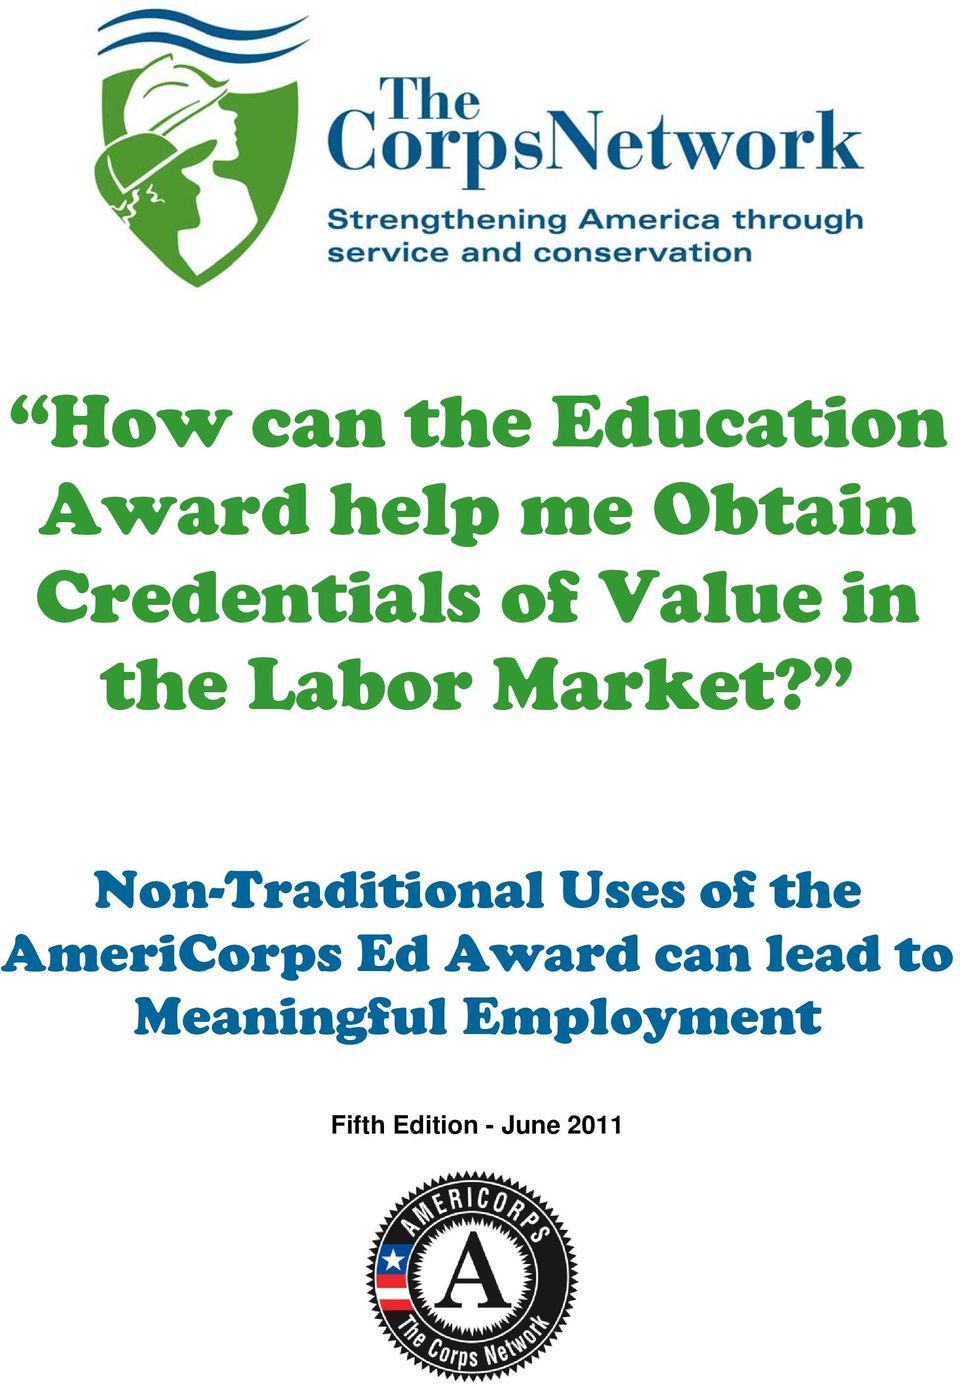 Non-Traditional Uses of the AmeriCorps Ed Award